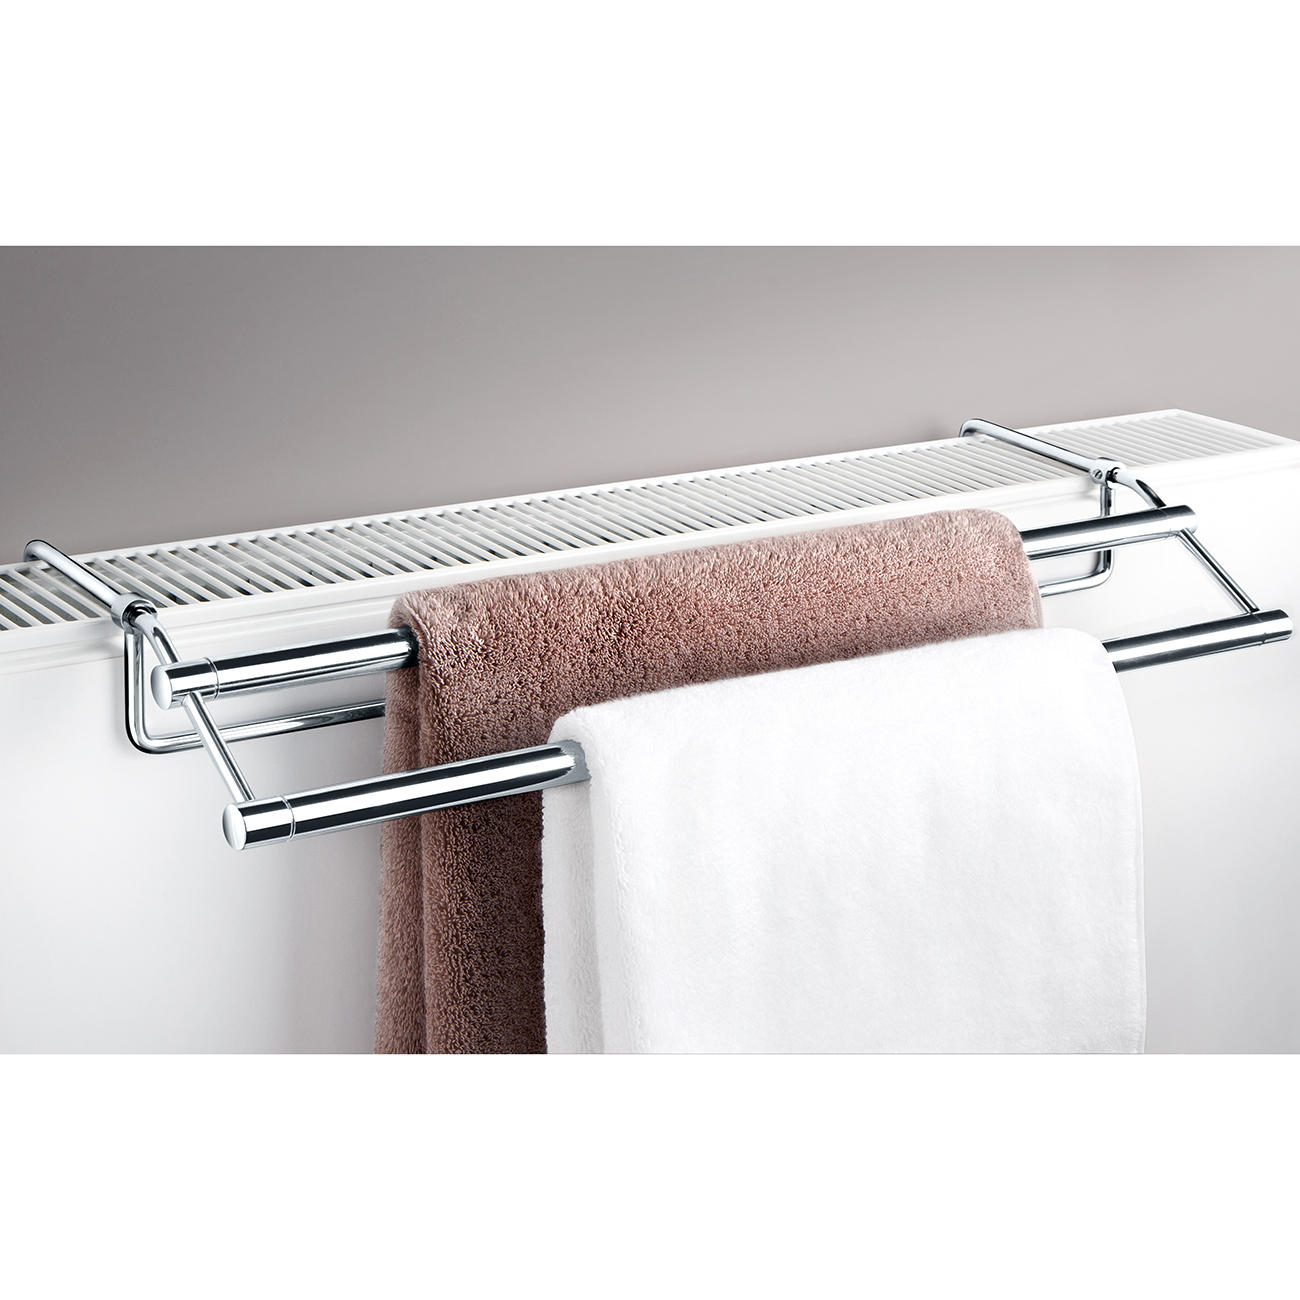 Le Meilleur Radiator Towel Rail 3 Year Product Guarantee Ce Mois Ci